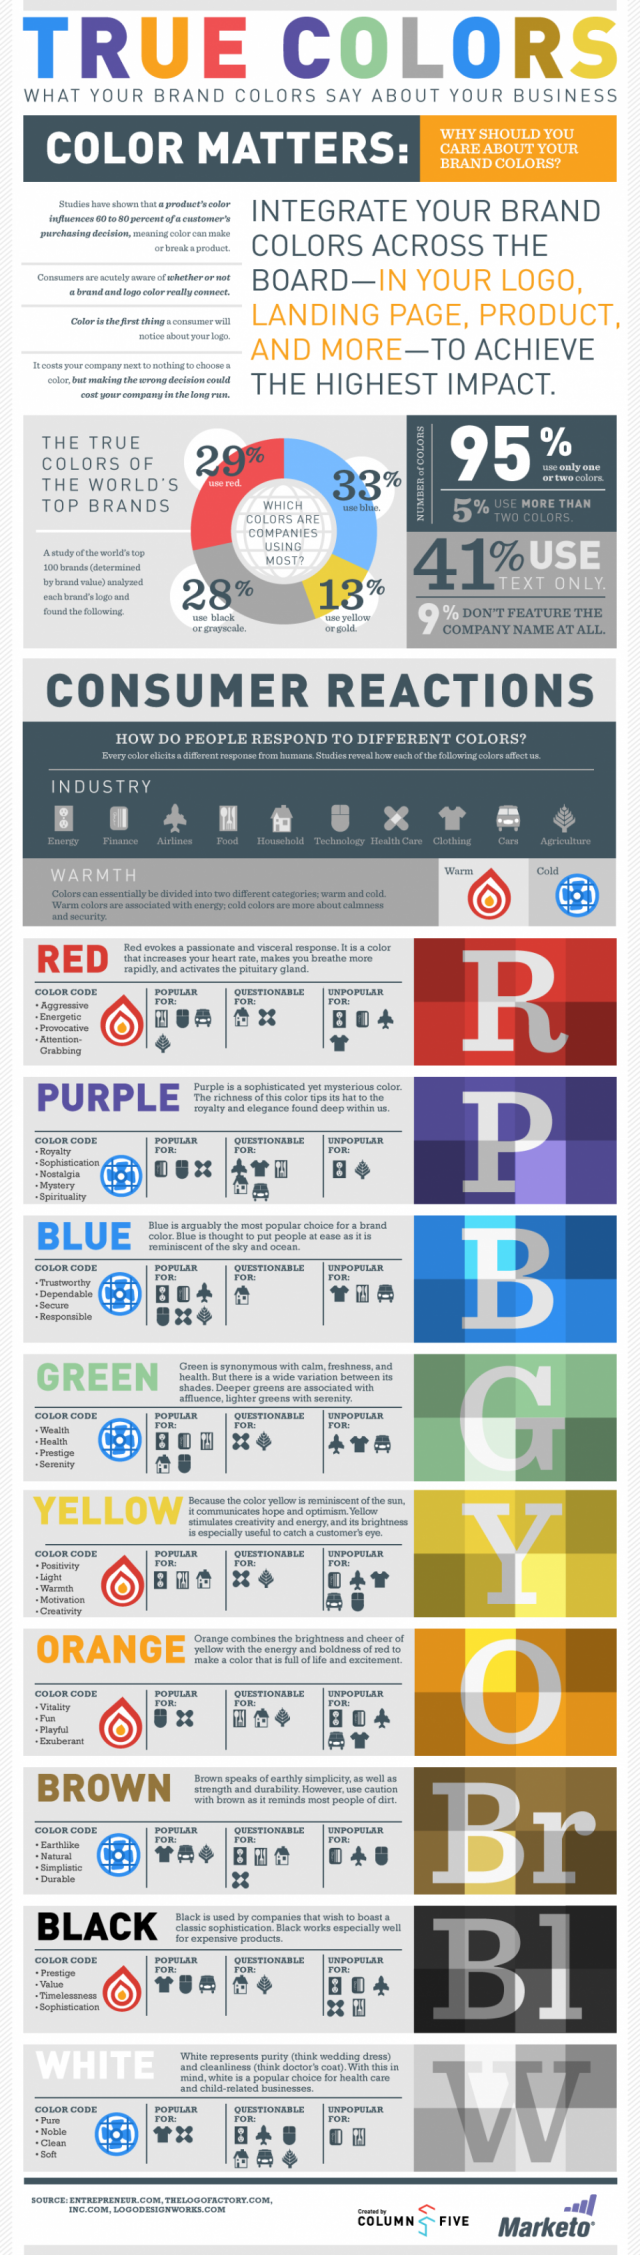 Marketo-true-colors-918x3235-640x2255